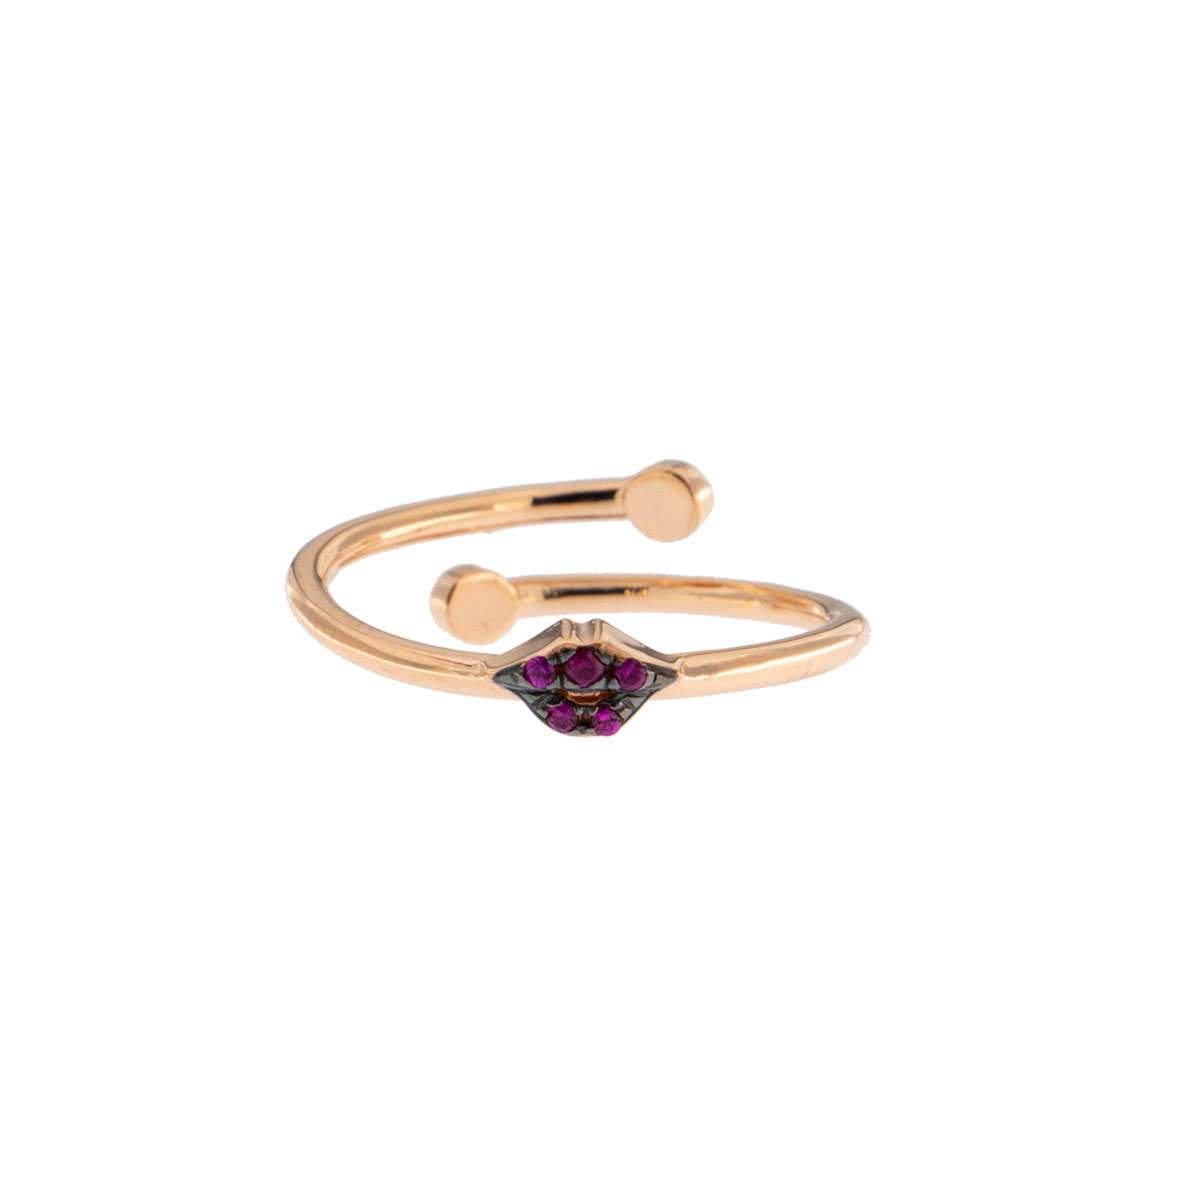 Rings - Zirconia Mouth Ring - 1 | Rue des Mille